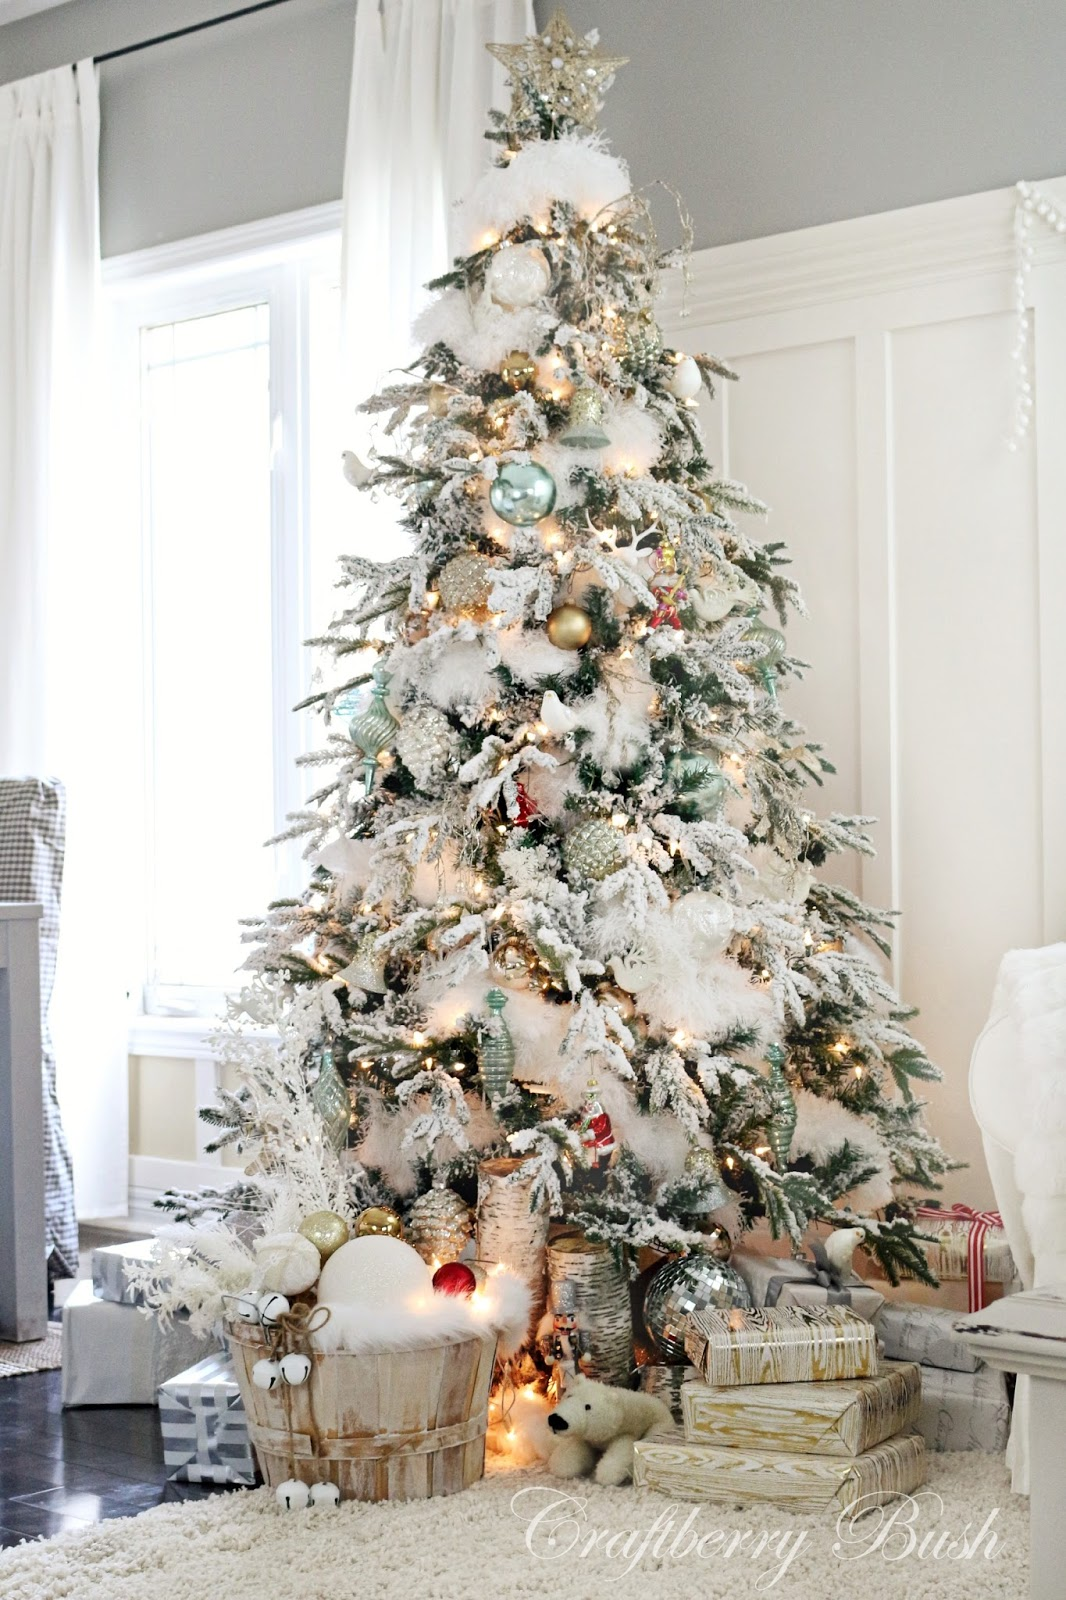 Donna's Blog: christmas tree decorations | Craftberry Bush